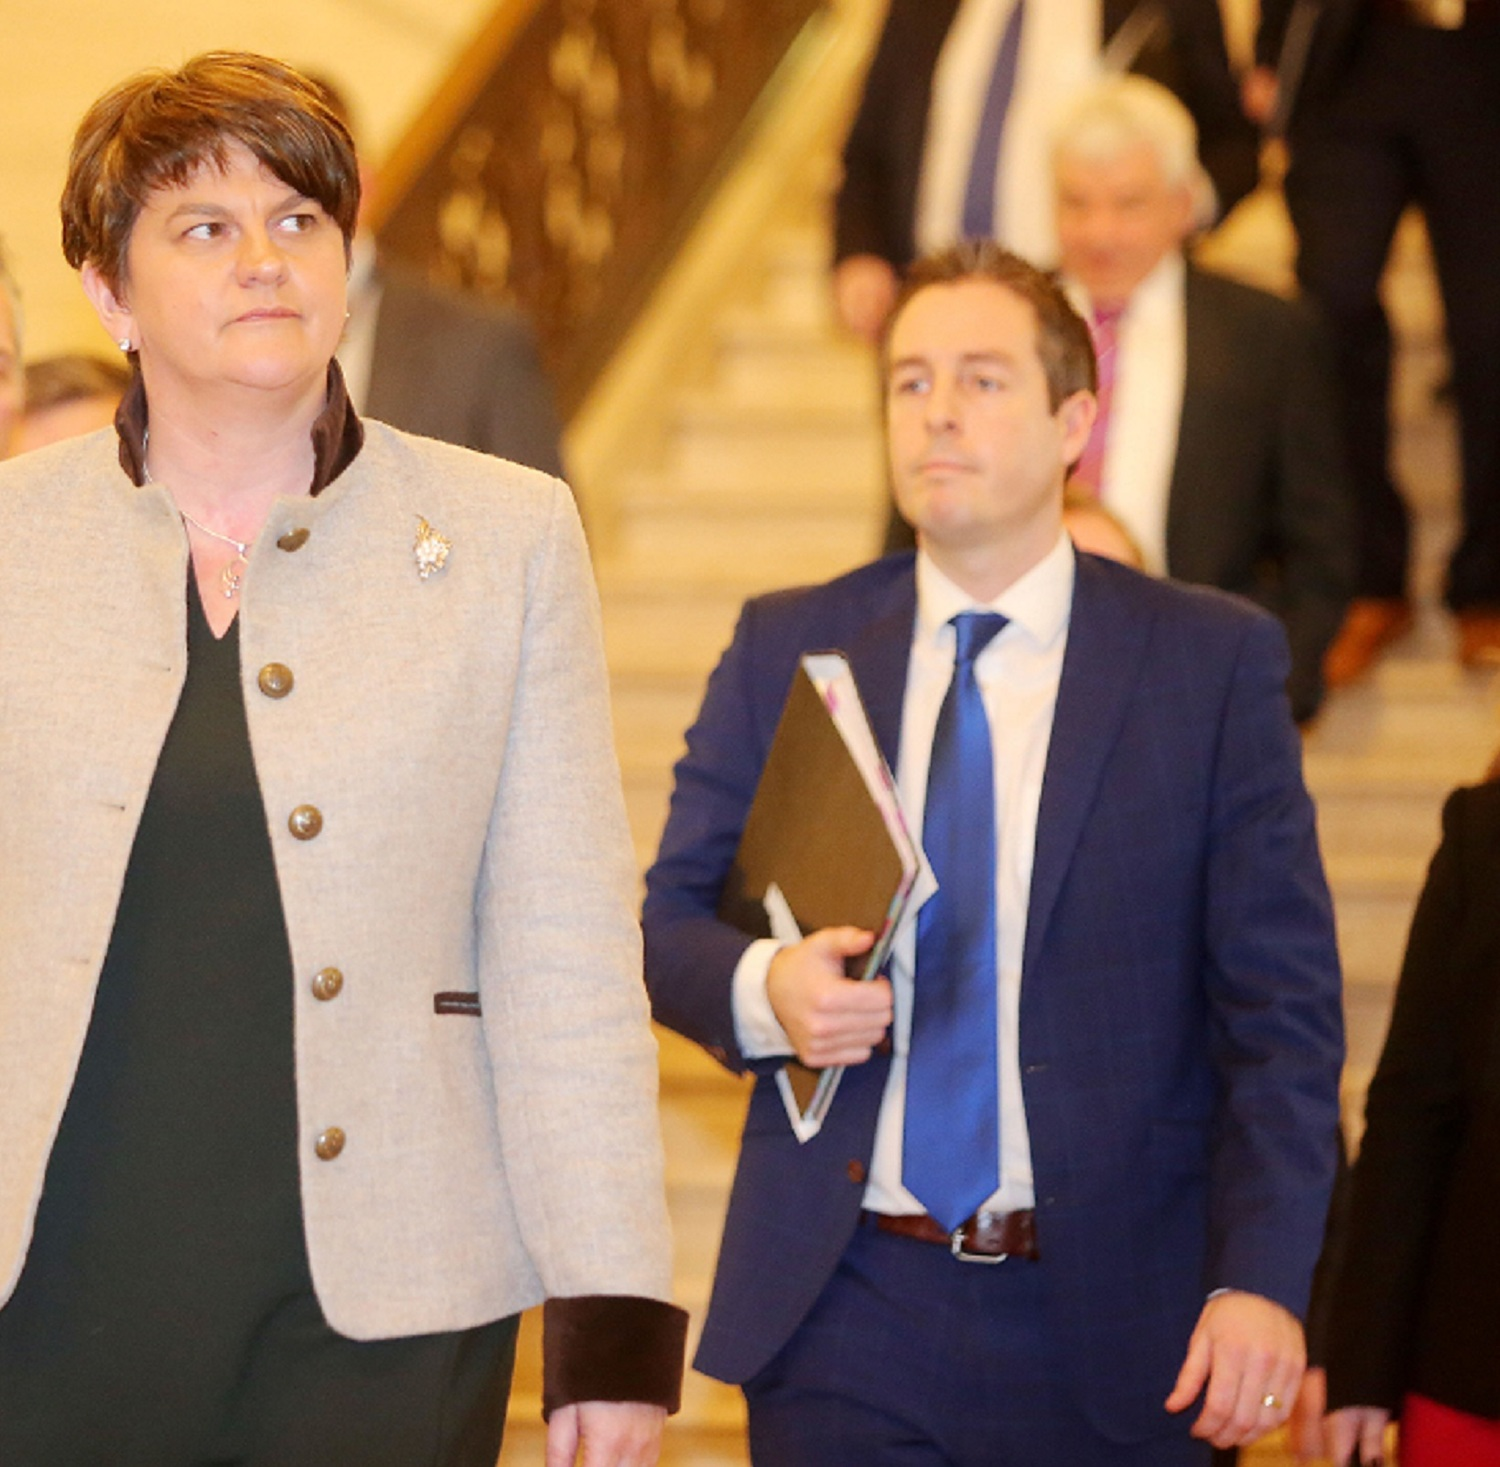 DUP leader Arlene Foster and Comunities Minister Paul Givan.